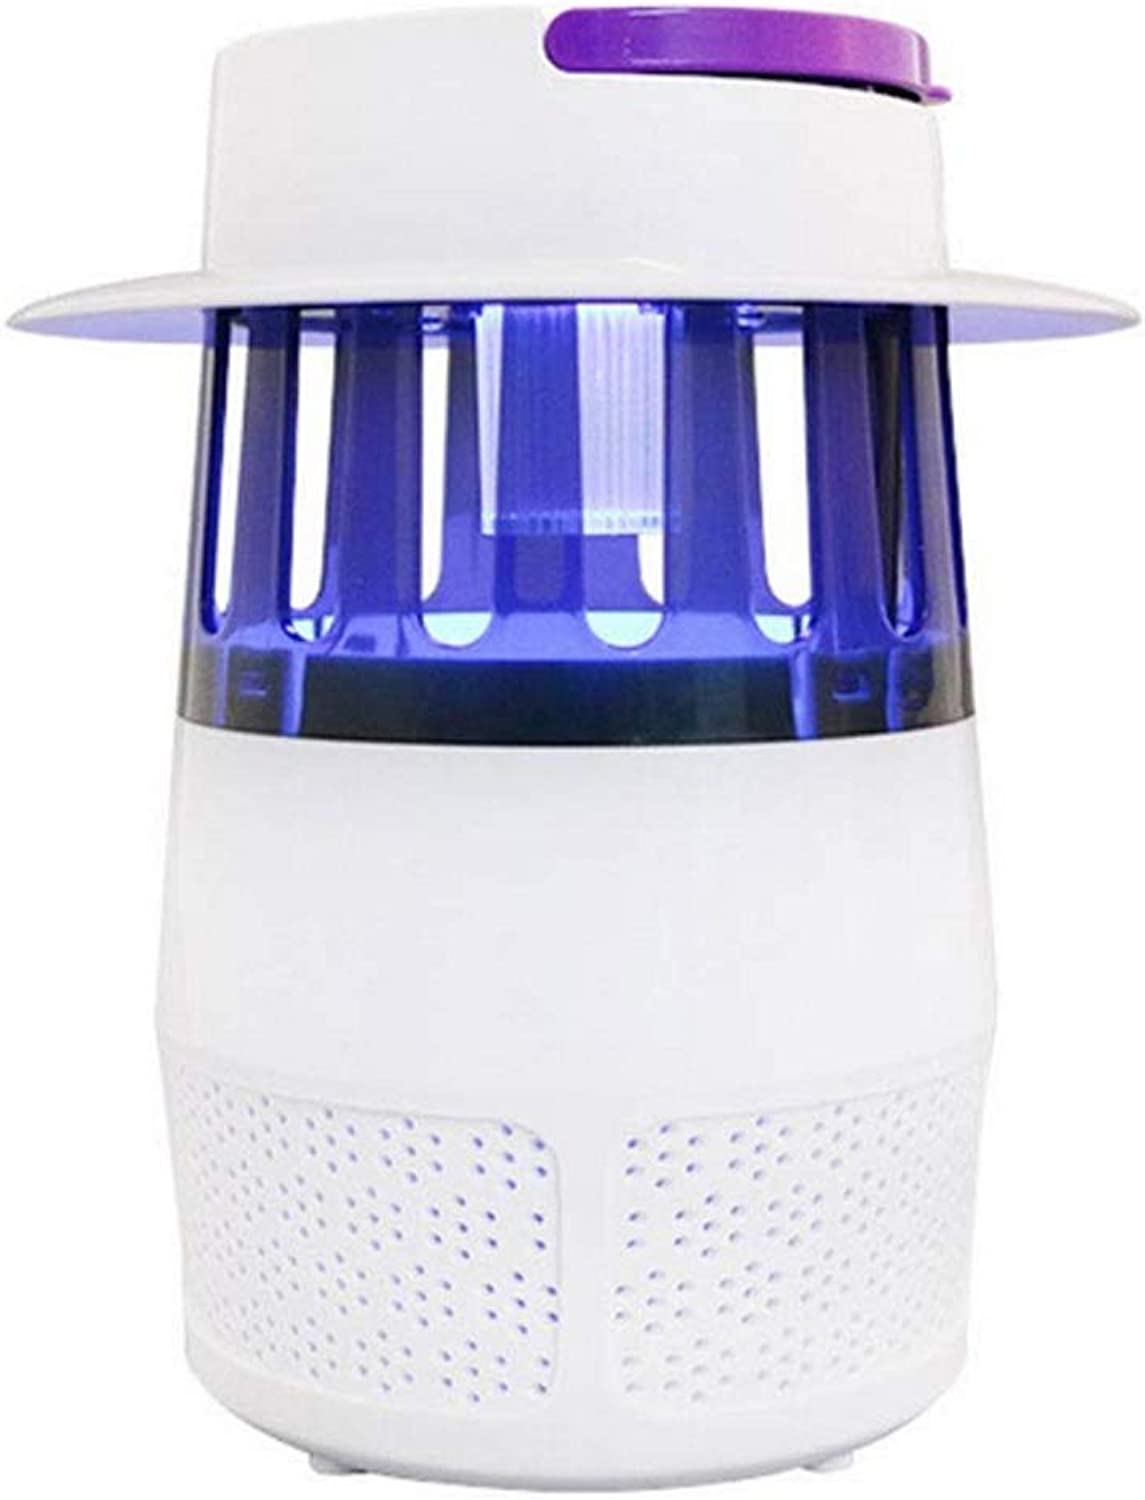 Mosquito Killer Repellent Lamp, Mosquito Trap, USB Powered Insect Trap Lamp, Anti Insect LED UV Light Effective and Intelligent Mosquito Catcher